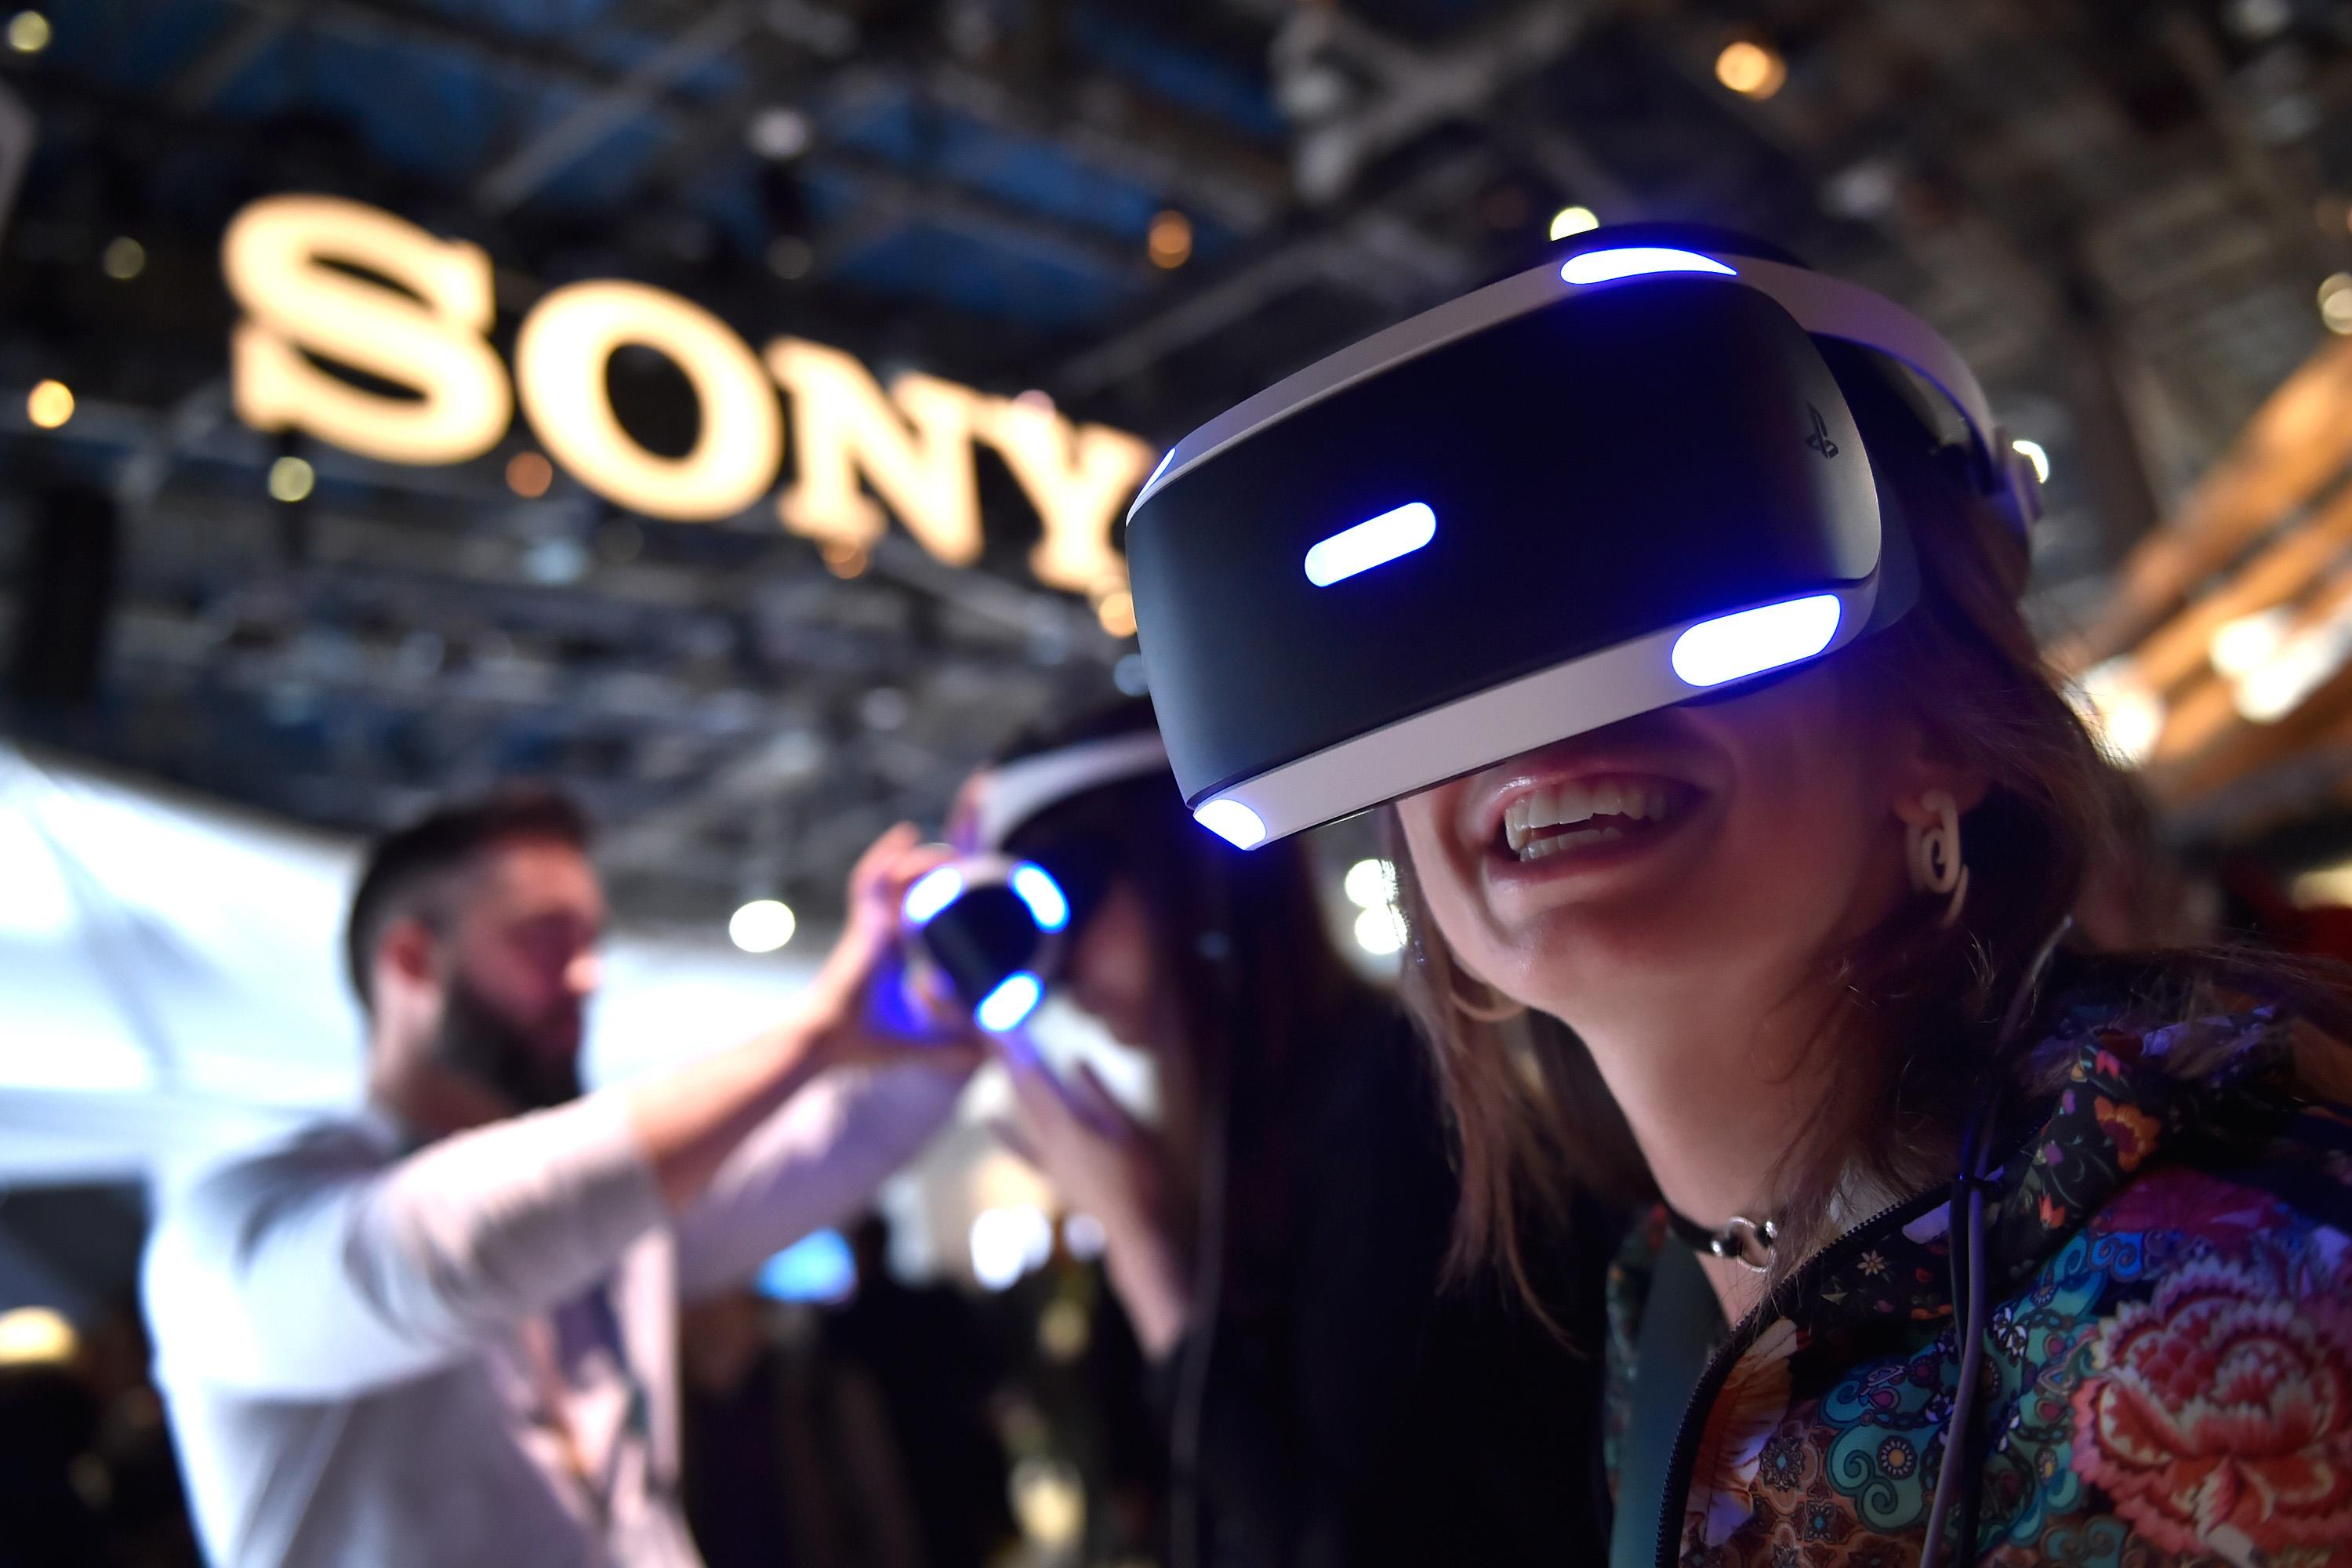 LAS VEGAS, NV - JANUARY 09:  Attendee Kristen Sarah uses Sony's Playstation VR at the Sony booth during CES 2018 at the Las Vegas Convention Center on January 9, 2018 in Las Vegas, Nevada. CES, the world's largest annual consumer technology trade show, runs through January 12 and features about 3,900 exhibitors showing off their latest products and services to more than 170,000 attendees.  (Photo by David Becker/Getty Images)